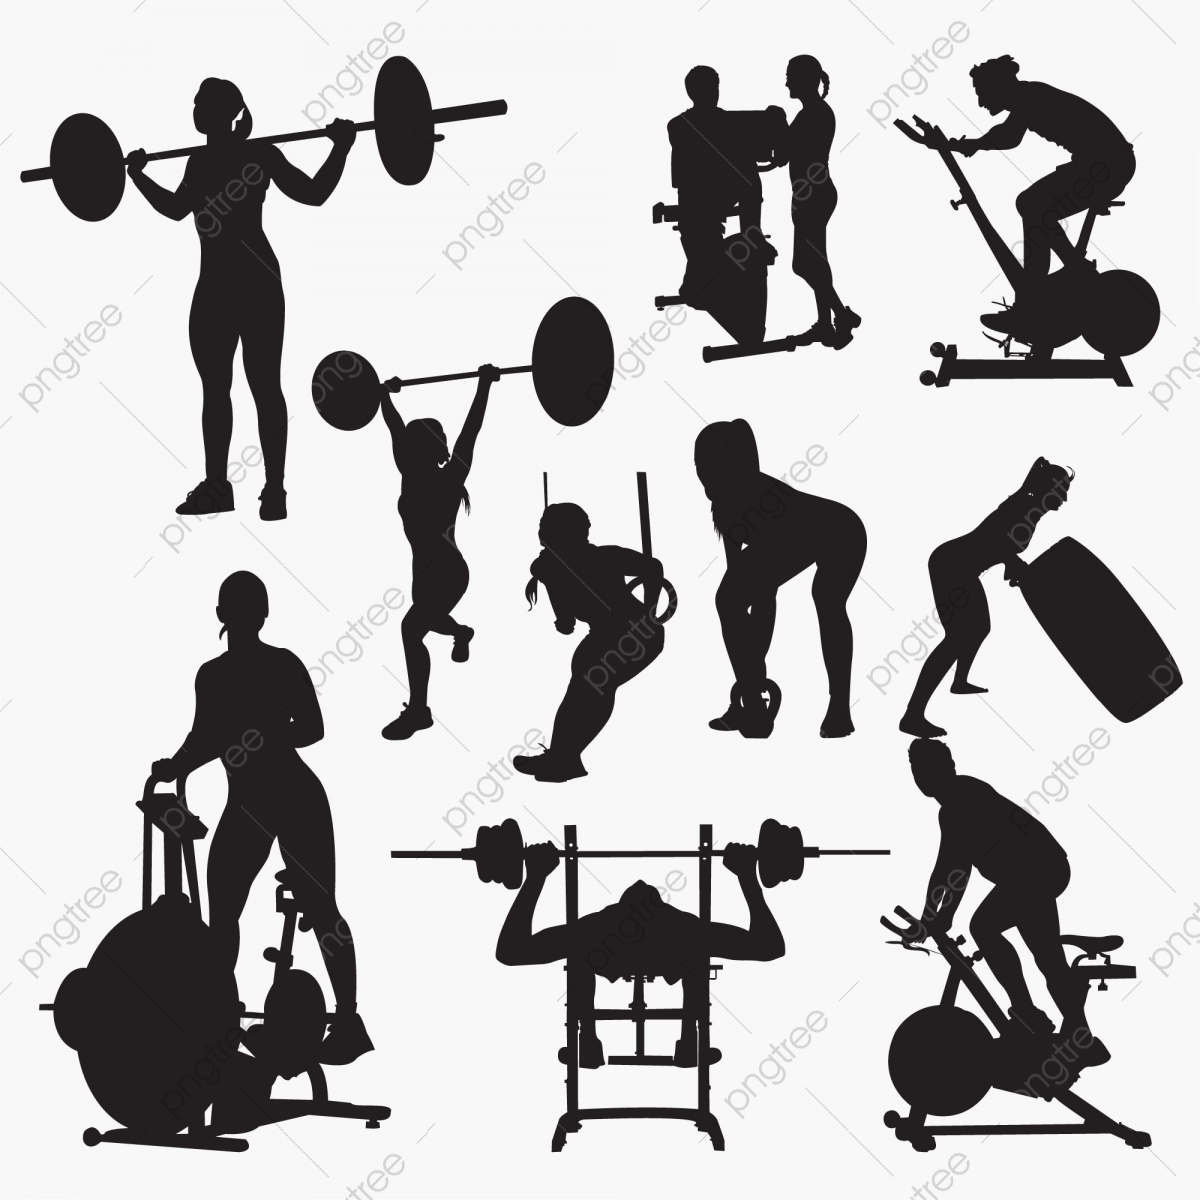 Fitness Silhouettes Aerobic Body Clip Art Png And Vector With Transparent Background For Free Download